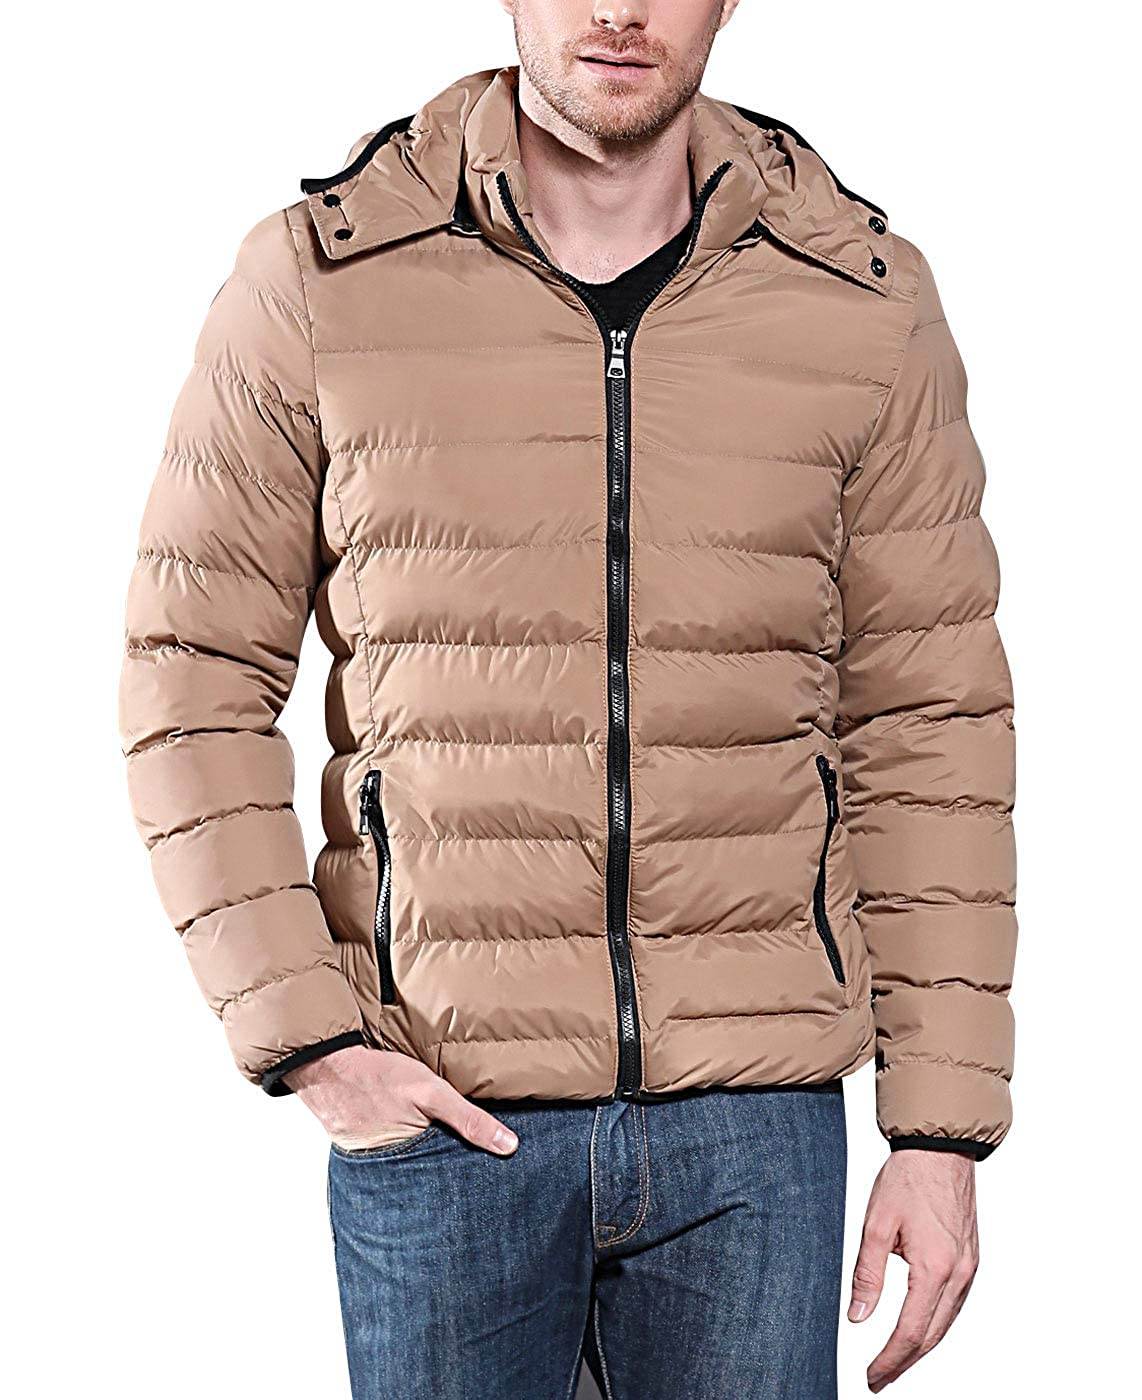 COUTUDI Mens Winter Lightweight Coat Warm Cotton Outwear